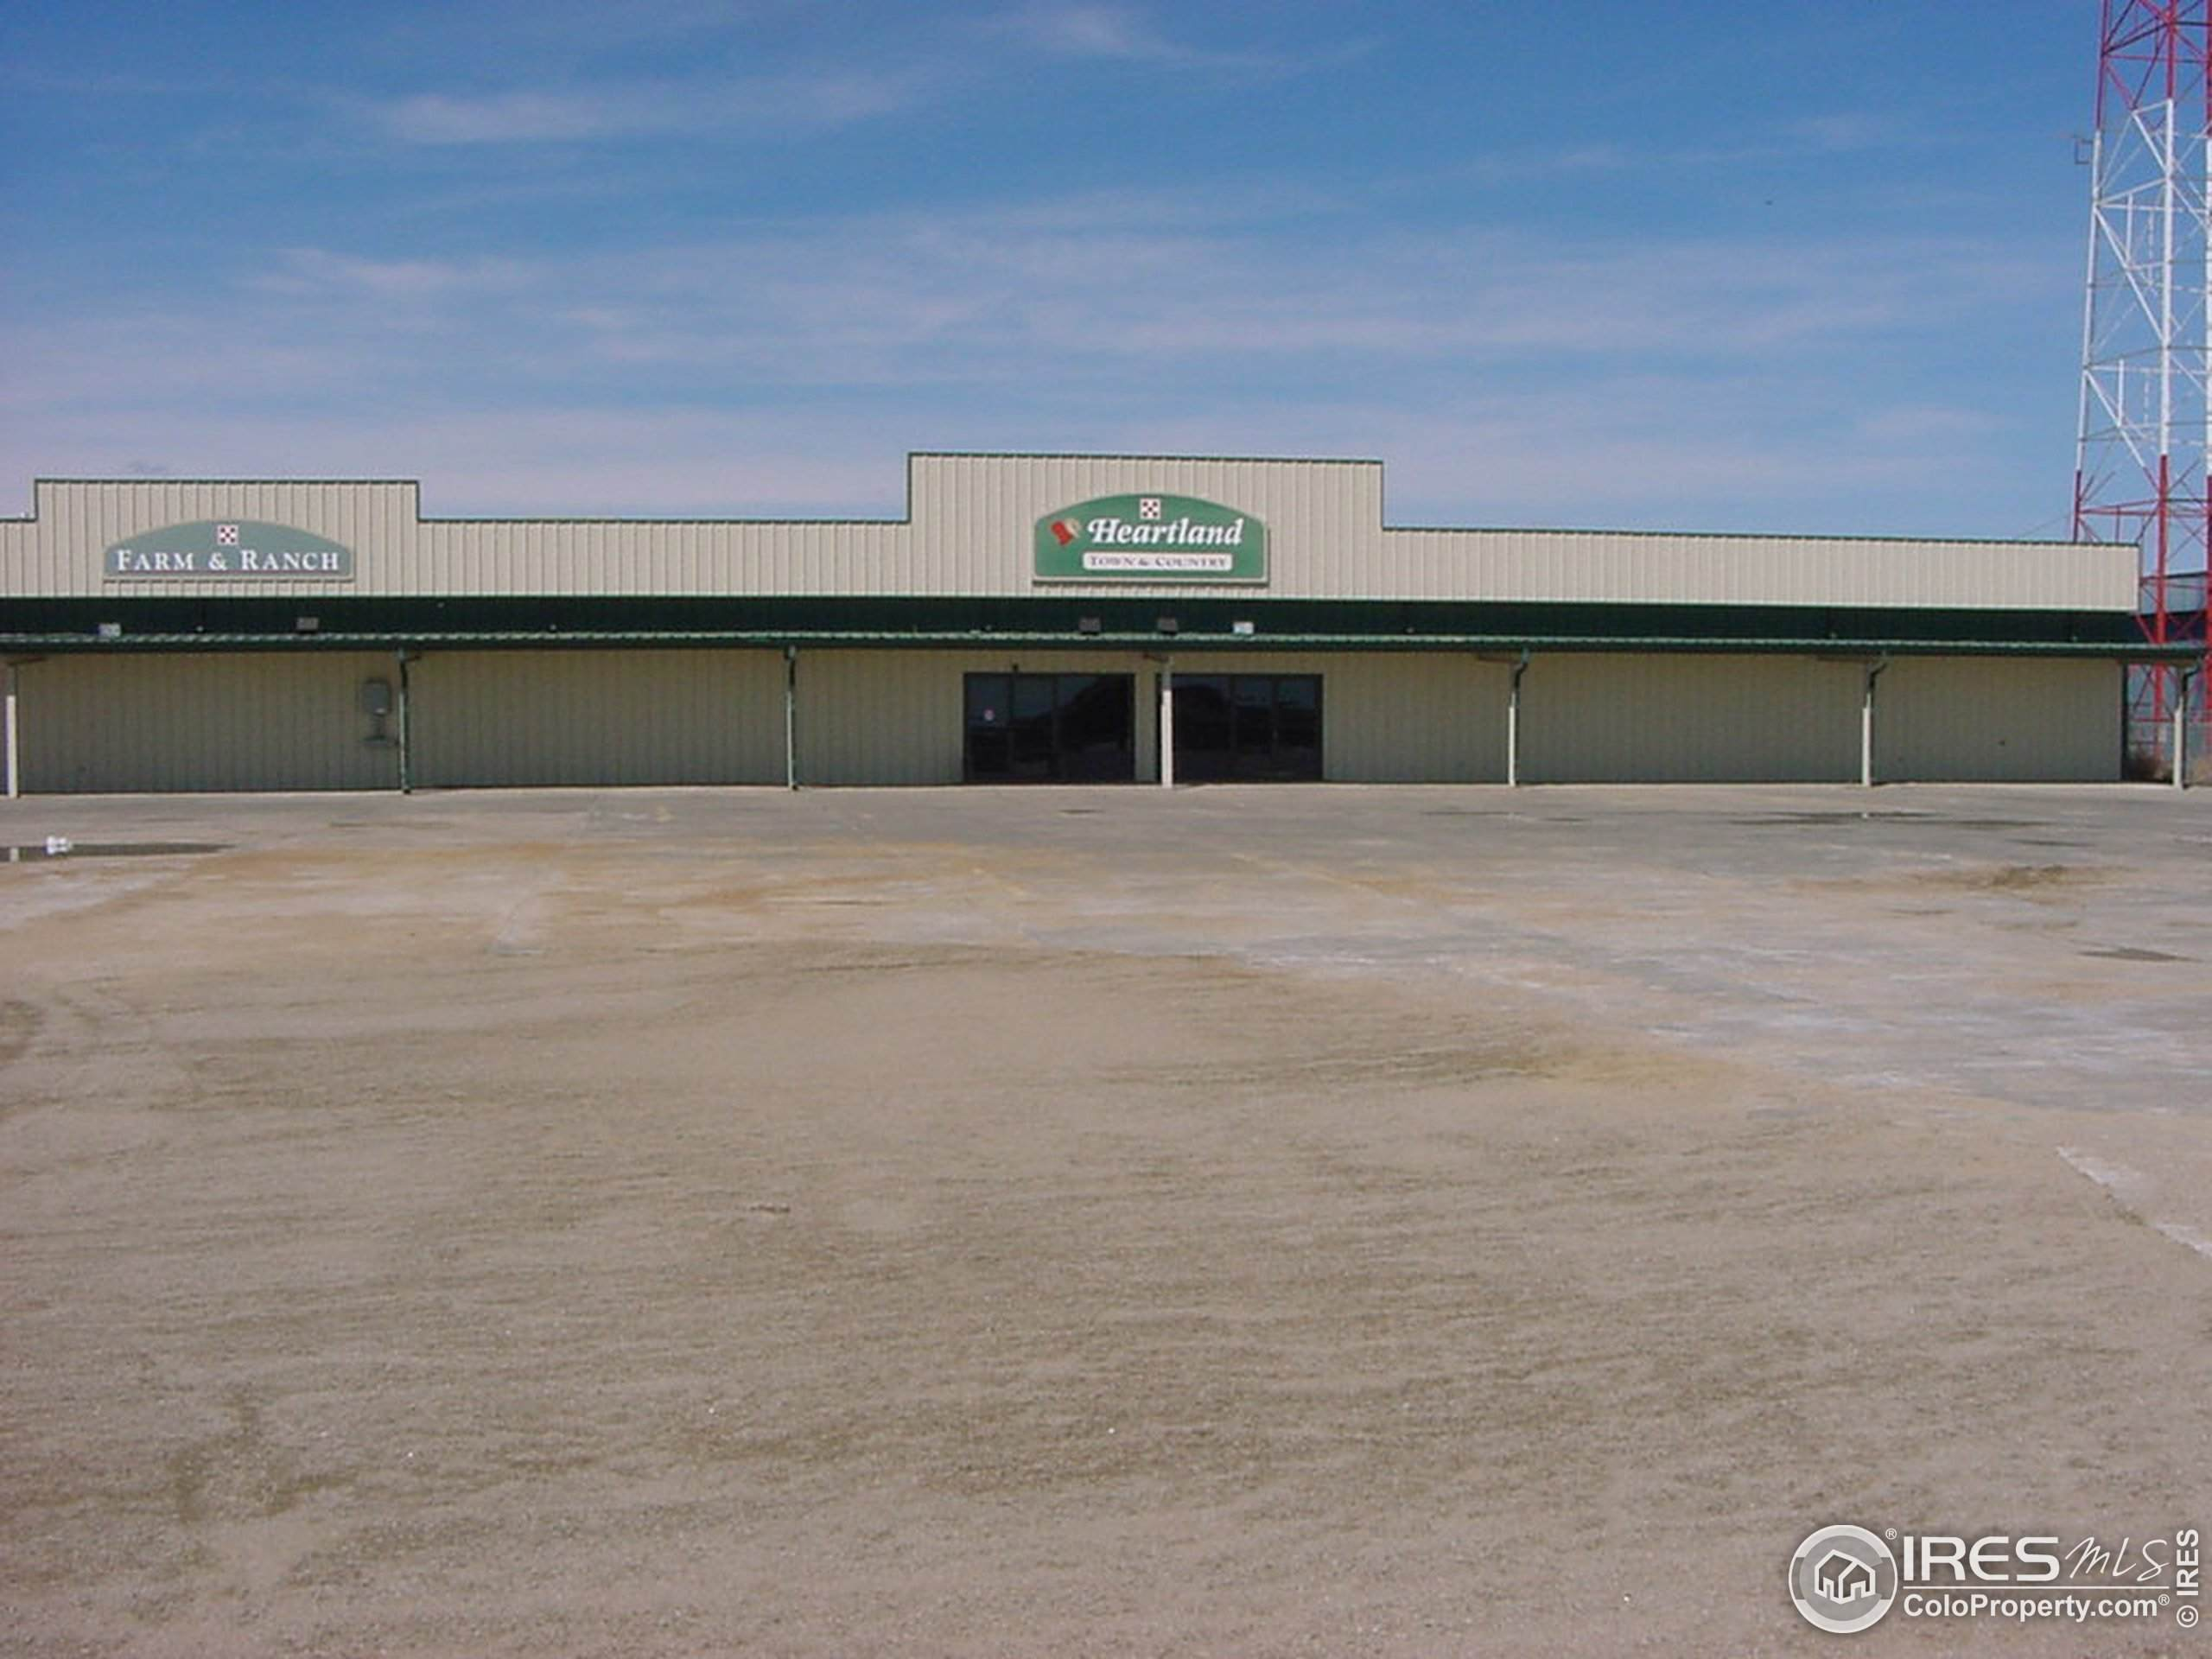 3208 Spruce Dr, Fort Collins, CO 80526 (MLS #895179) :: 8z Real Estate